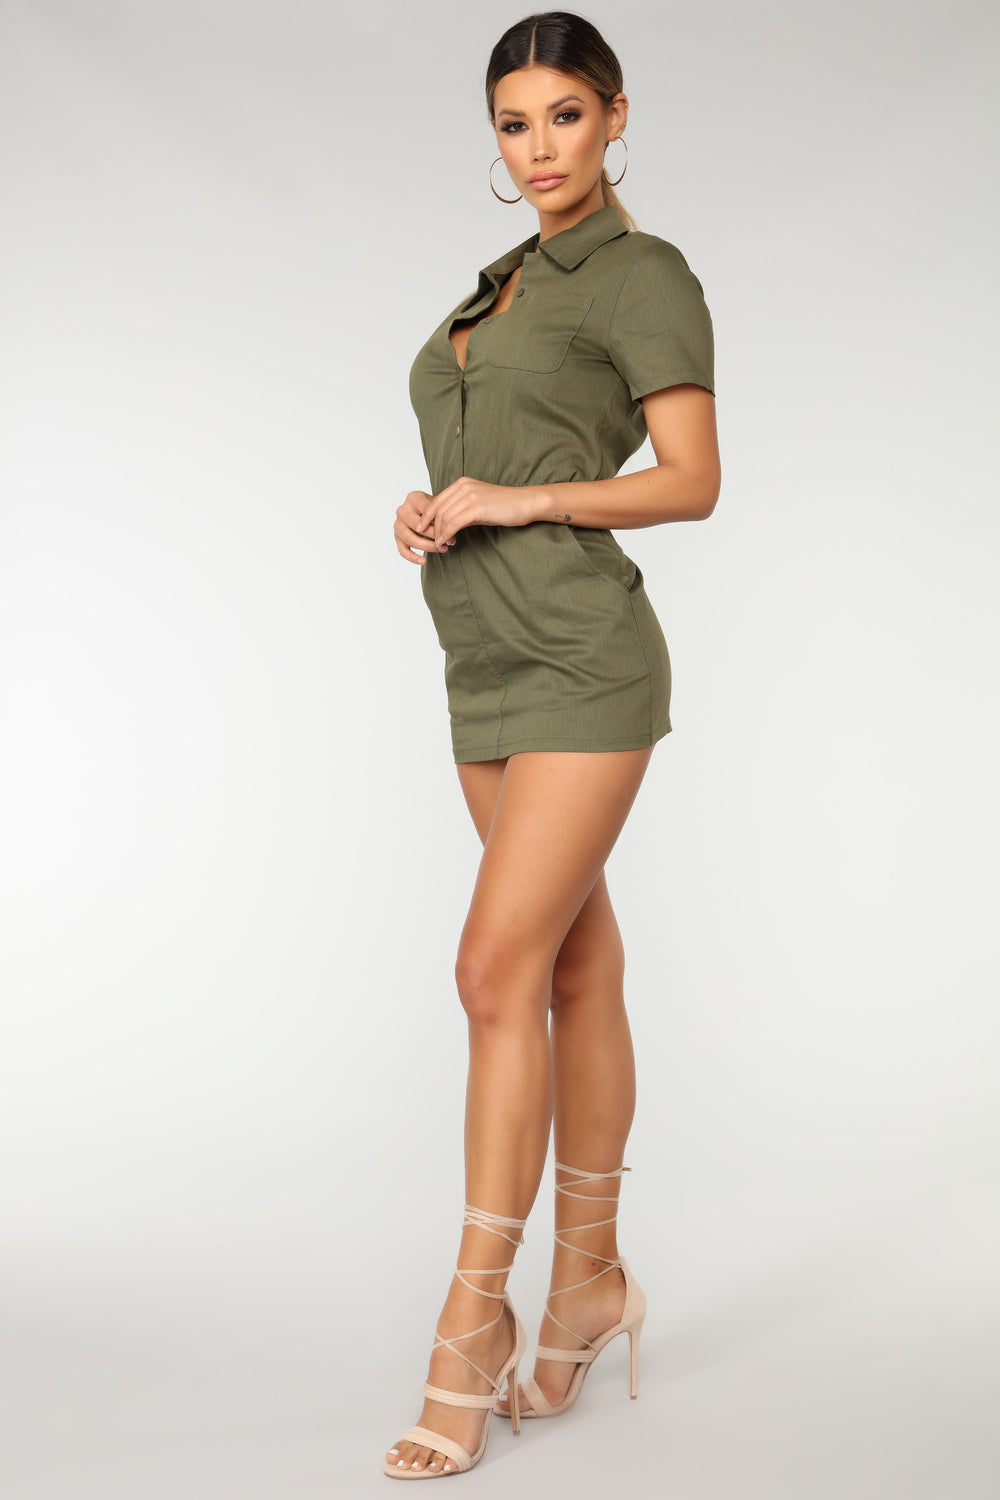 Airshow Collared Dress - Olive